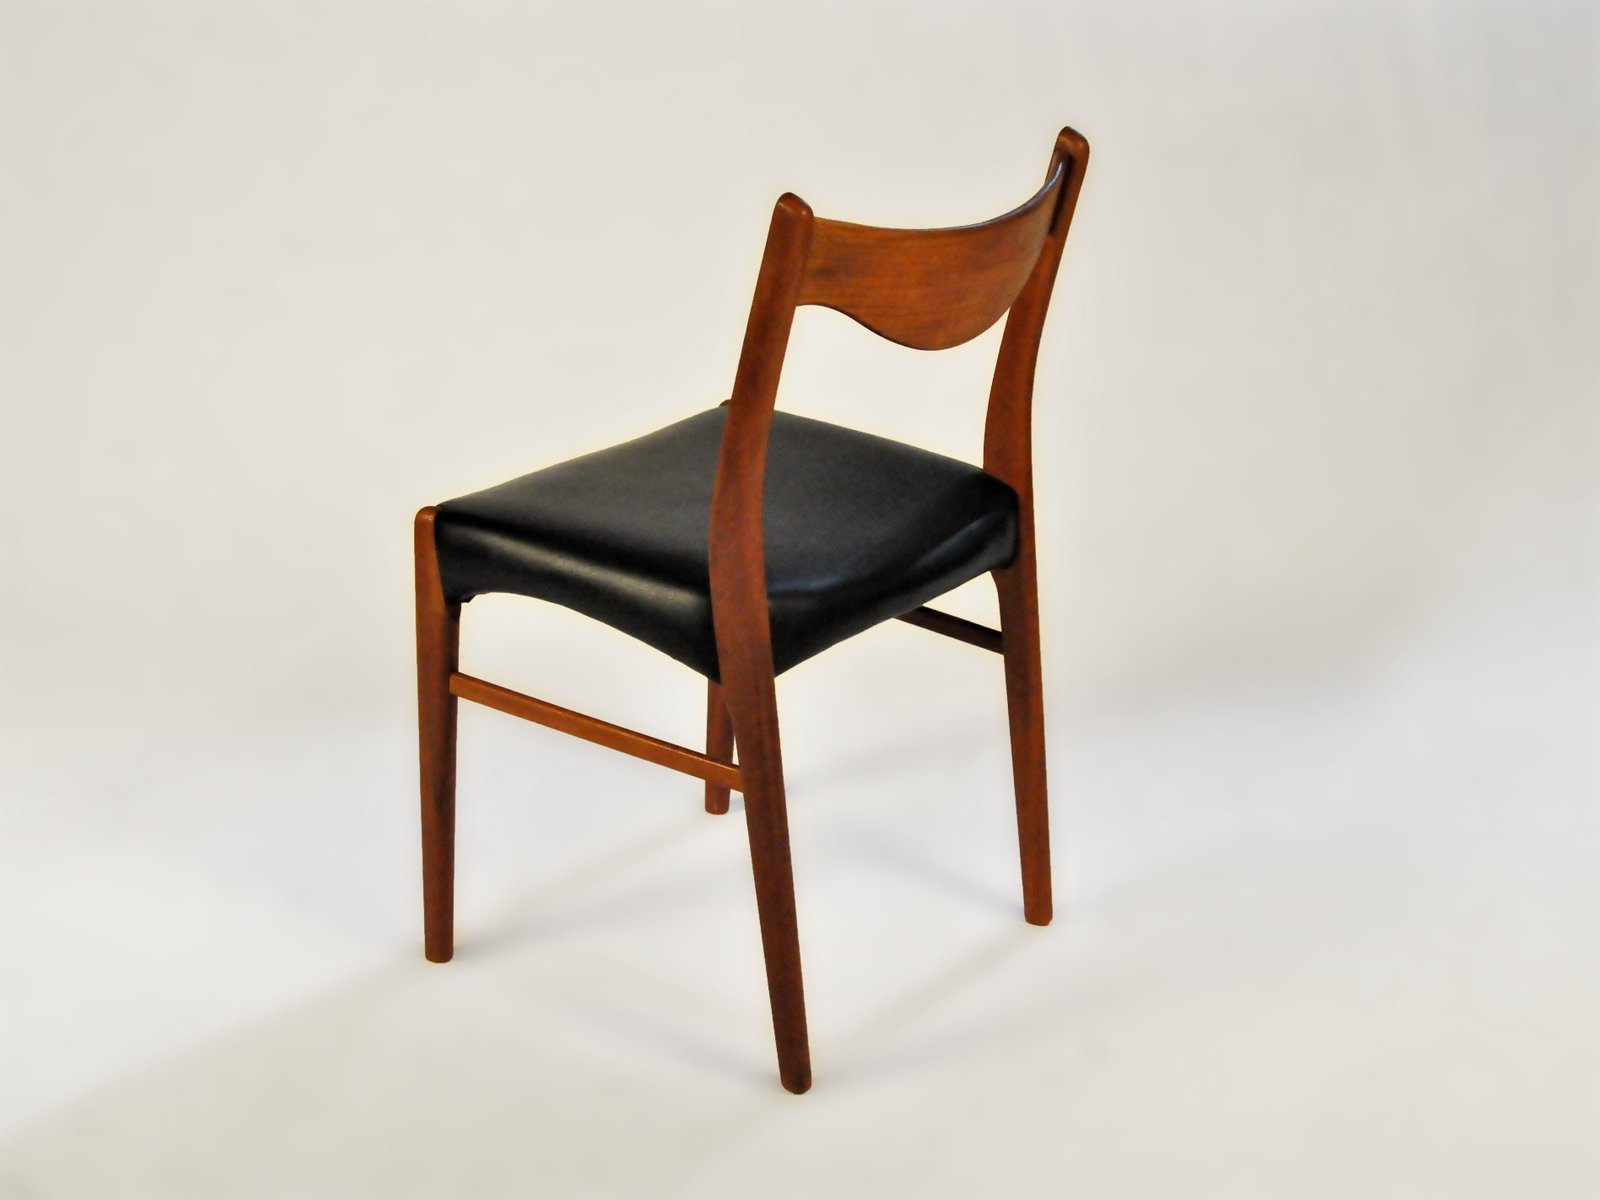 Teak Dining Chairs By Ejnar Larsen Amp Axel Bender Madsen